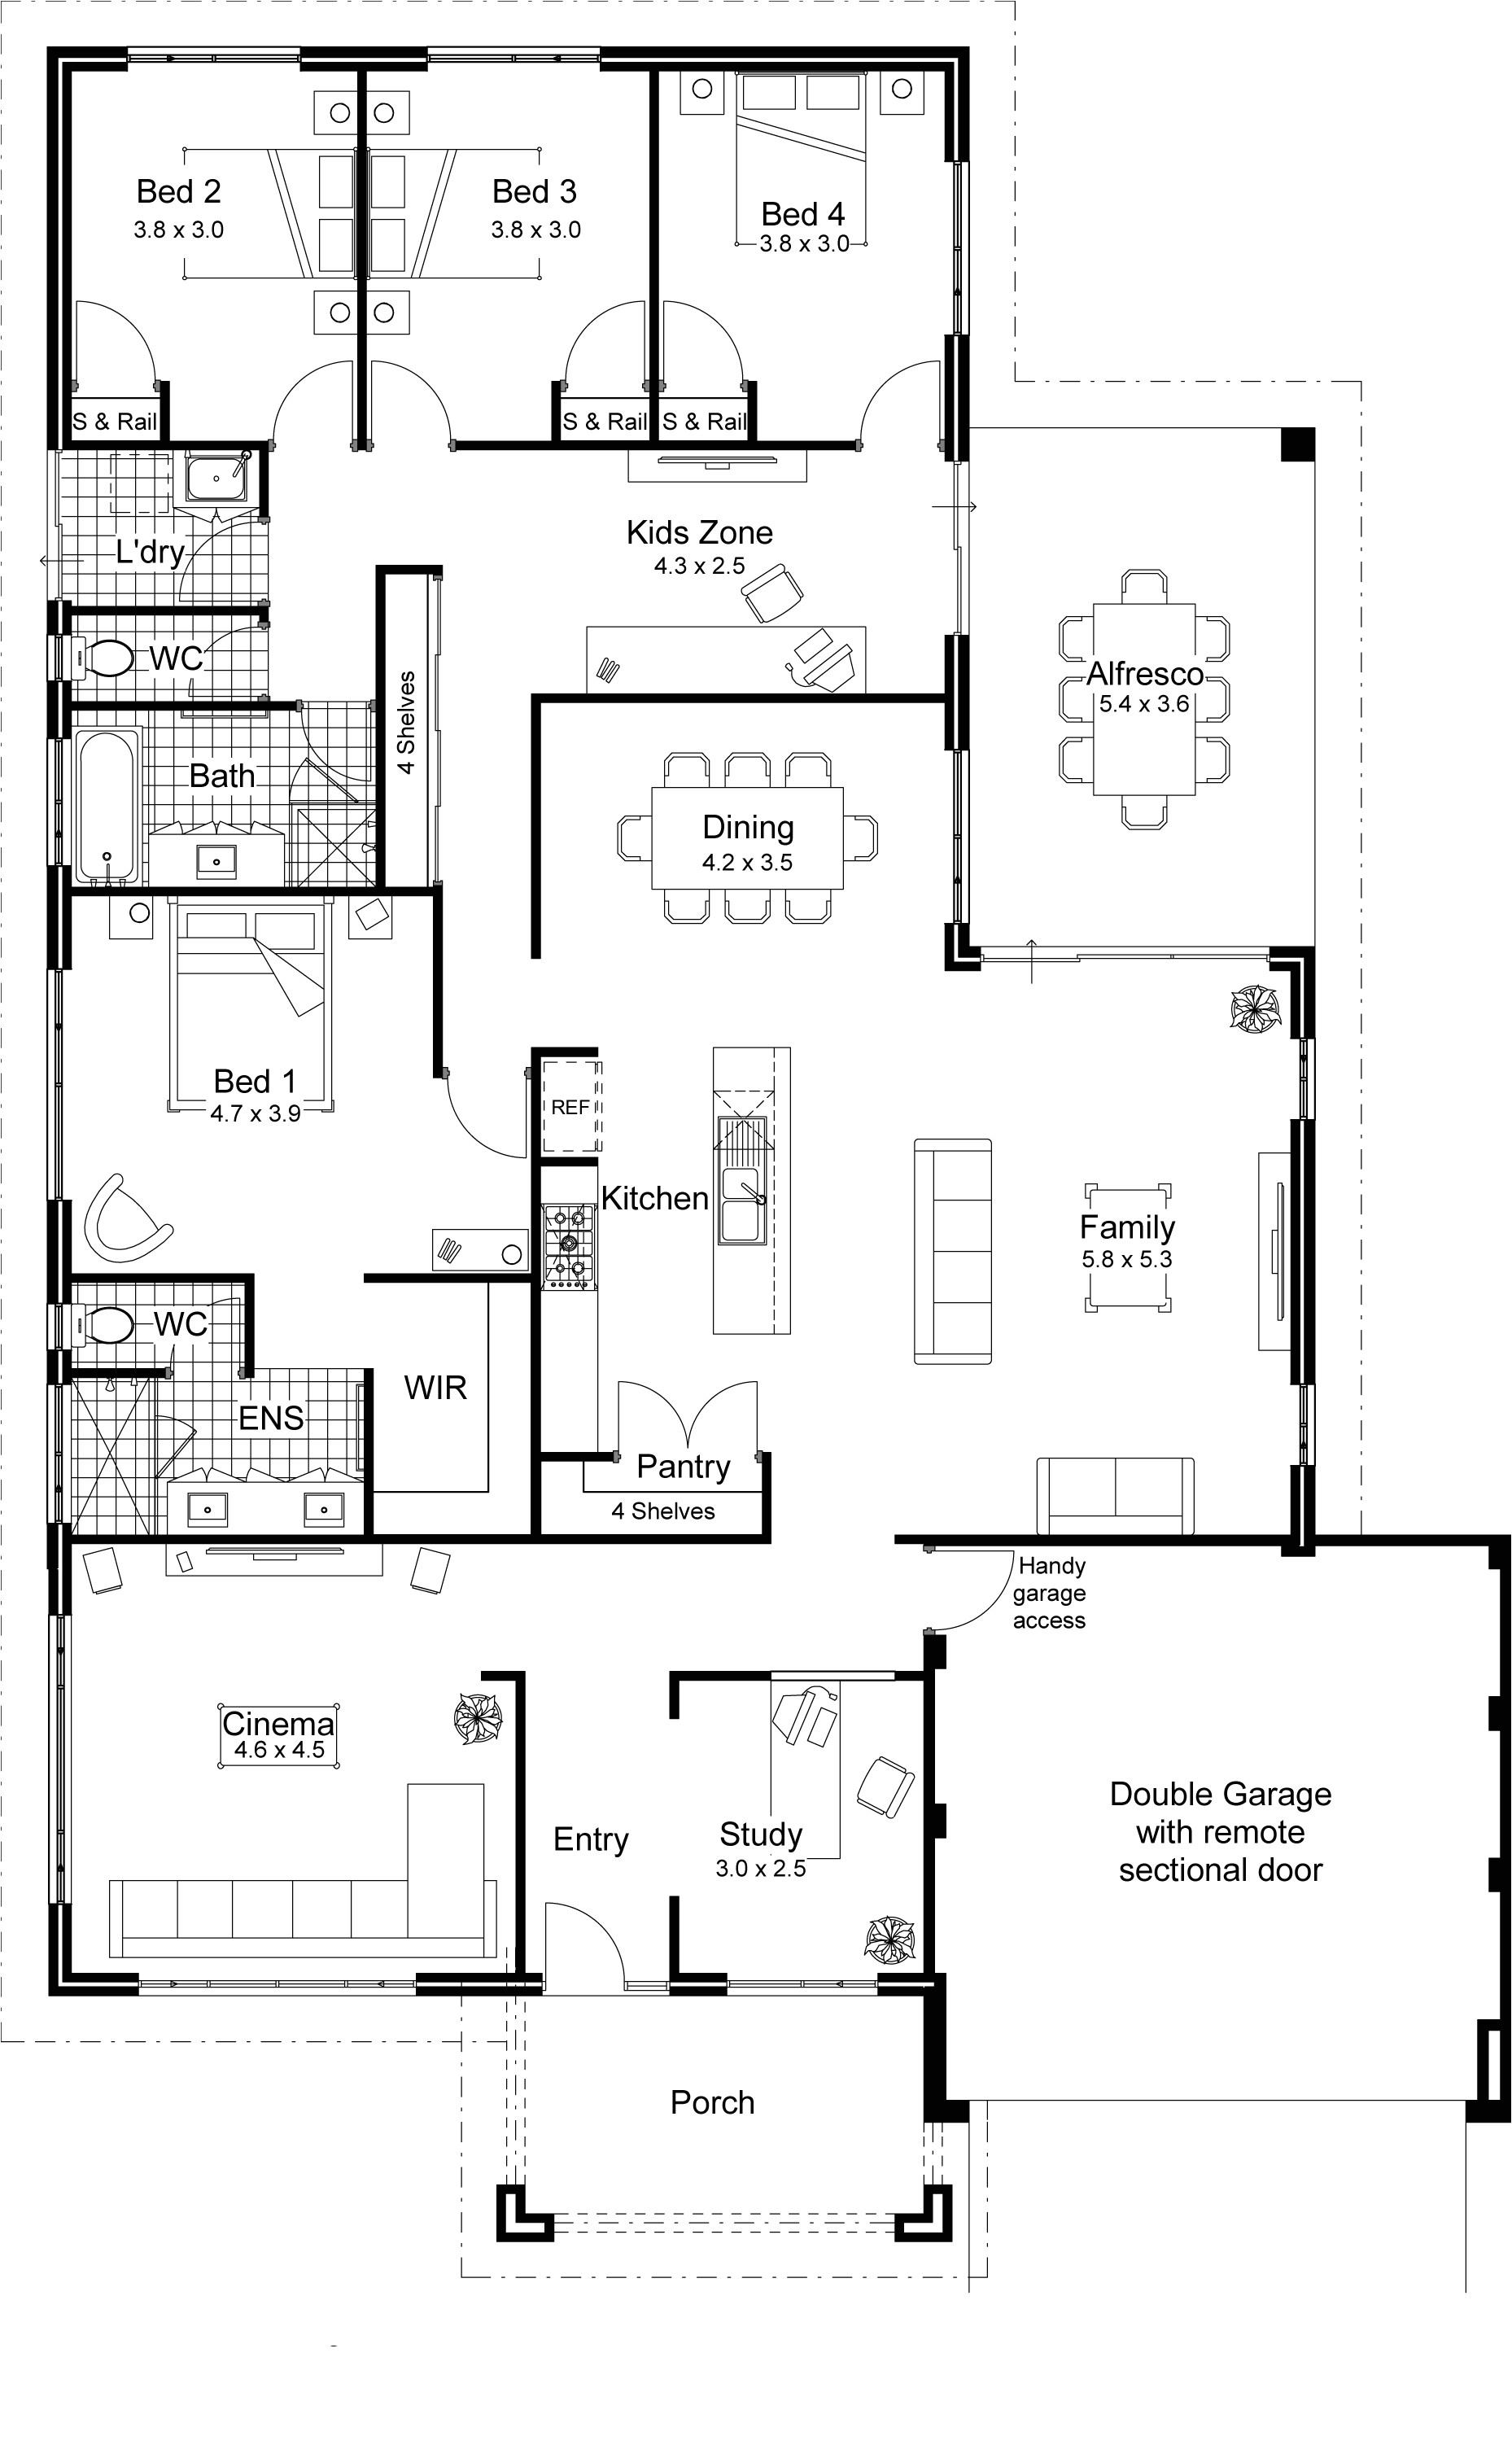 home kits cabin plans floor plan pool house garage guest new open modular homes architecture open floor plan design ideas